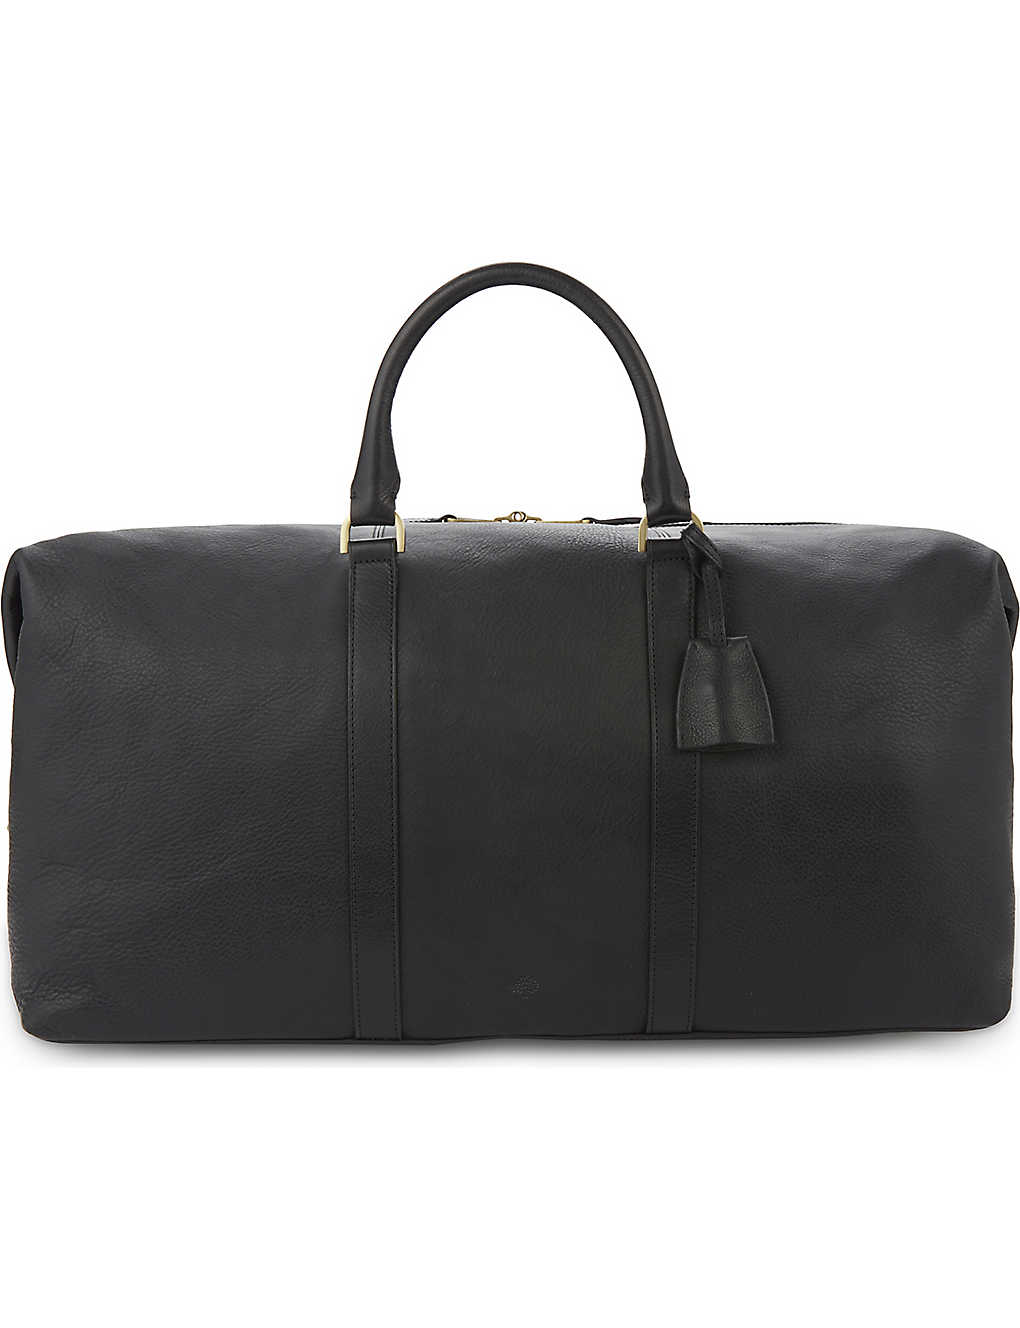 MULBERRY: Medium Clipper leather holdall